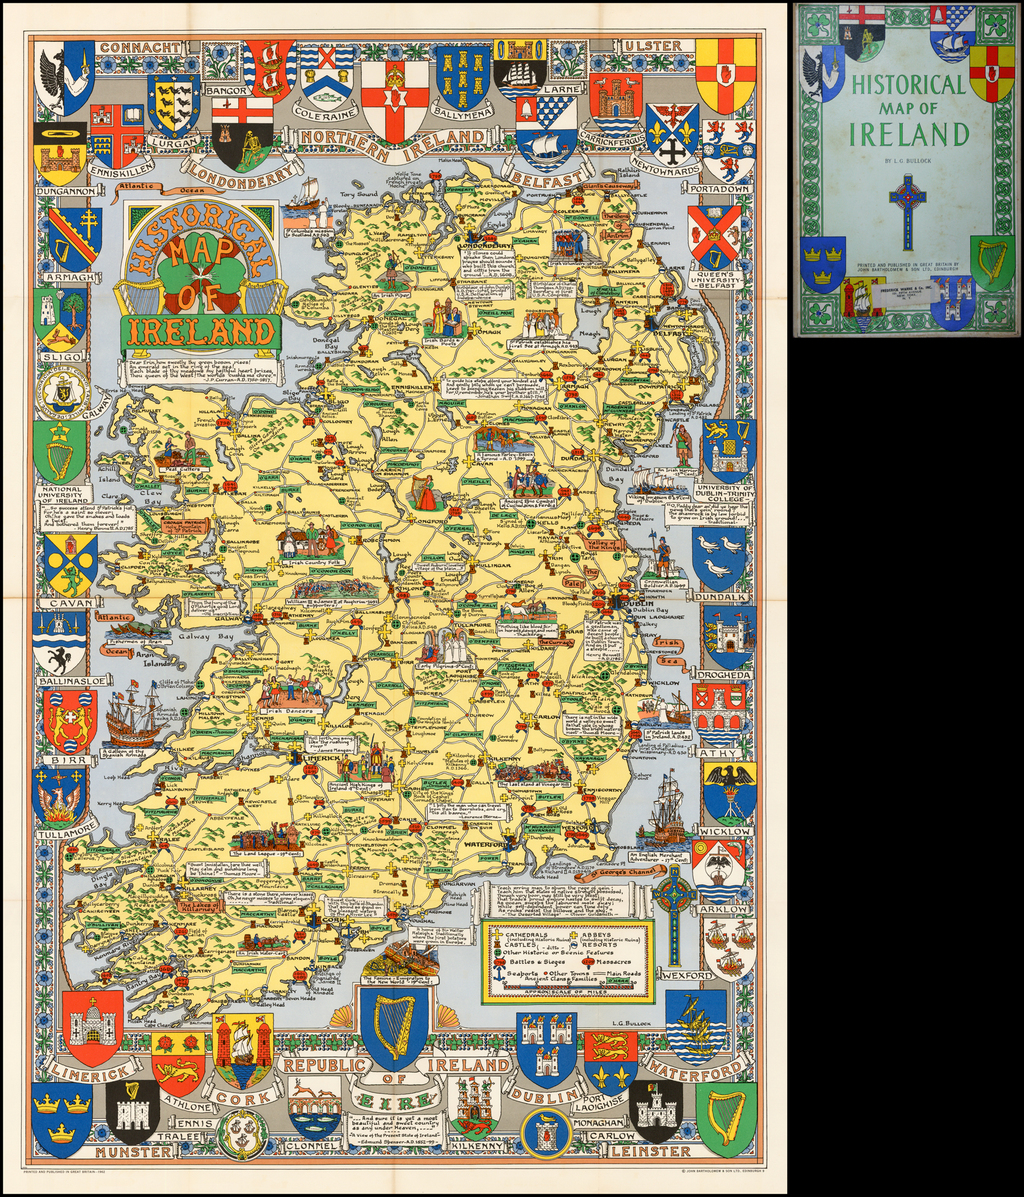 Map Of Ireland Historical Sites.Historical Map Of Ireland Barry Lawrence Ruderman Antique Maps Inc